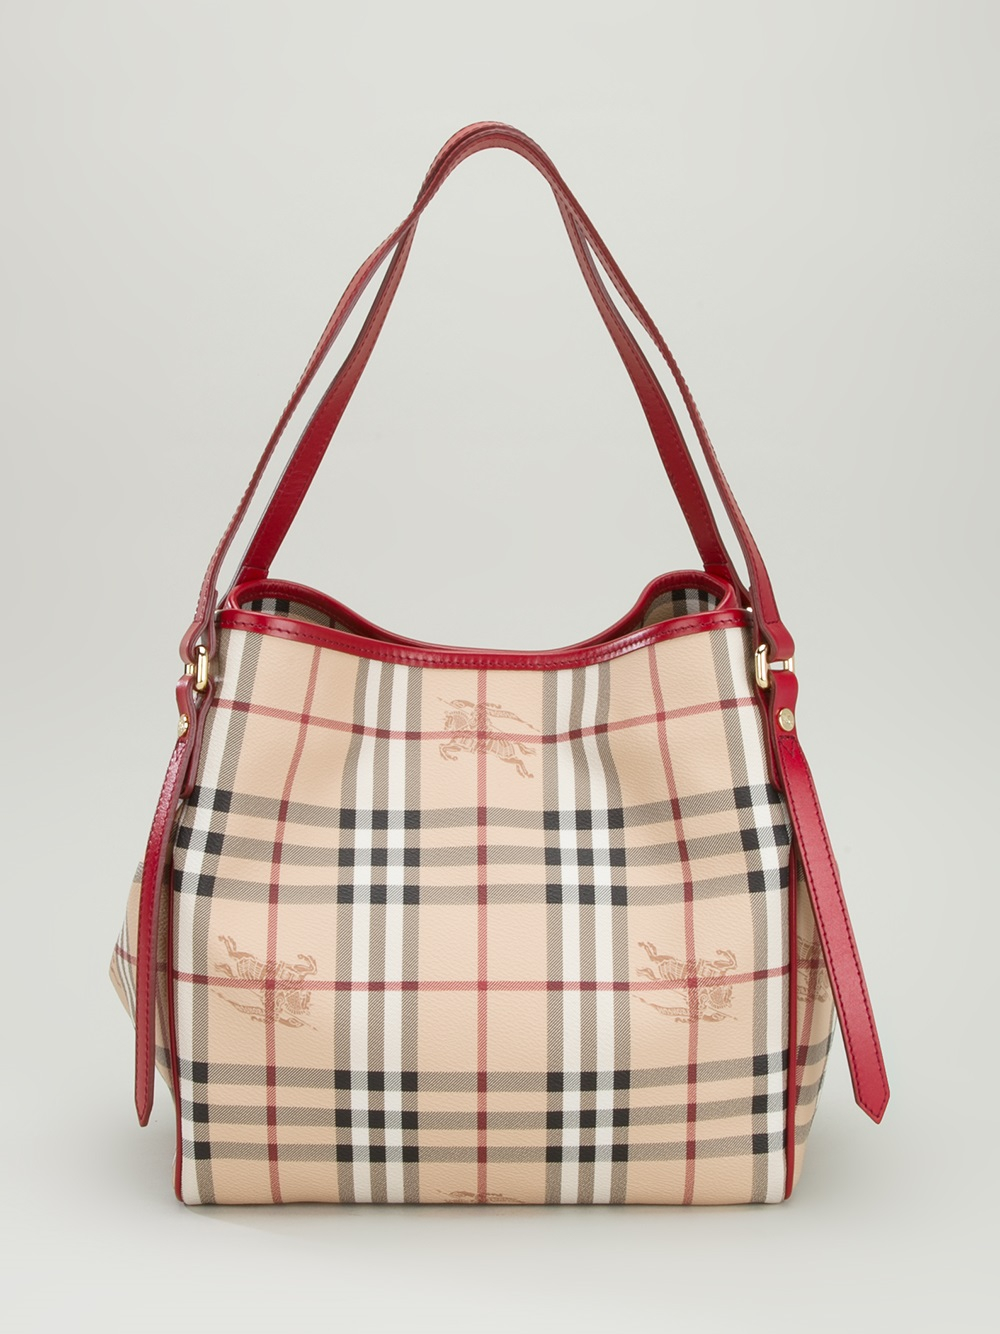 Burberry Small Tote in Red